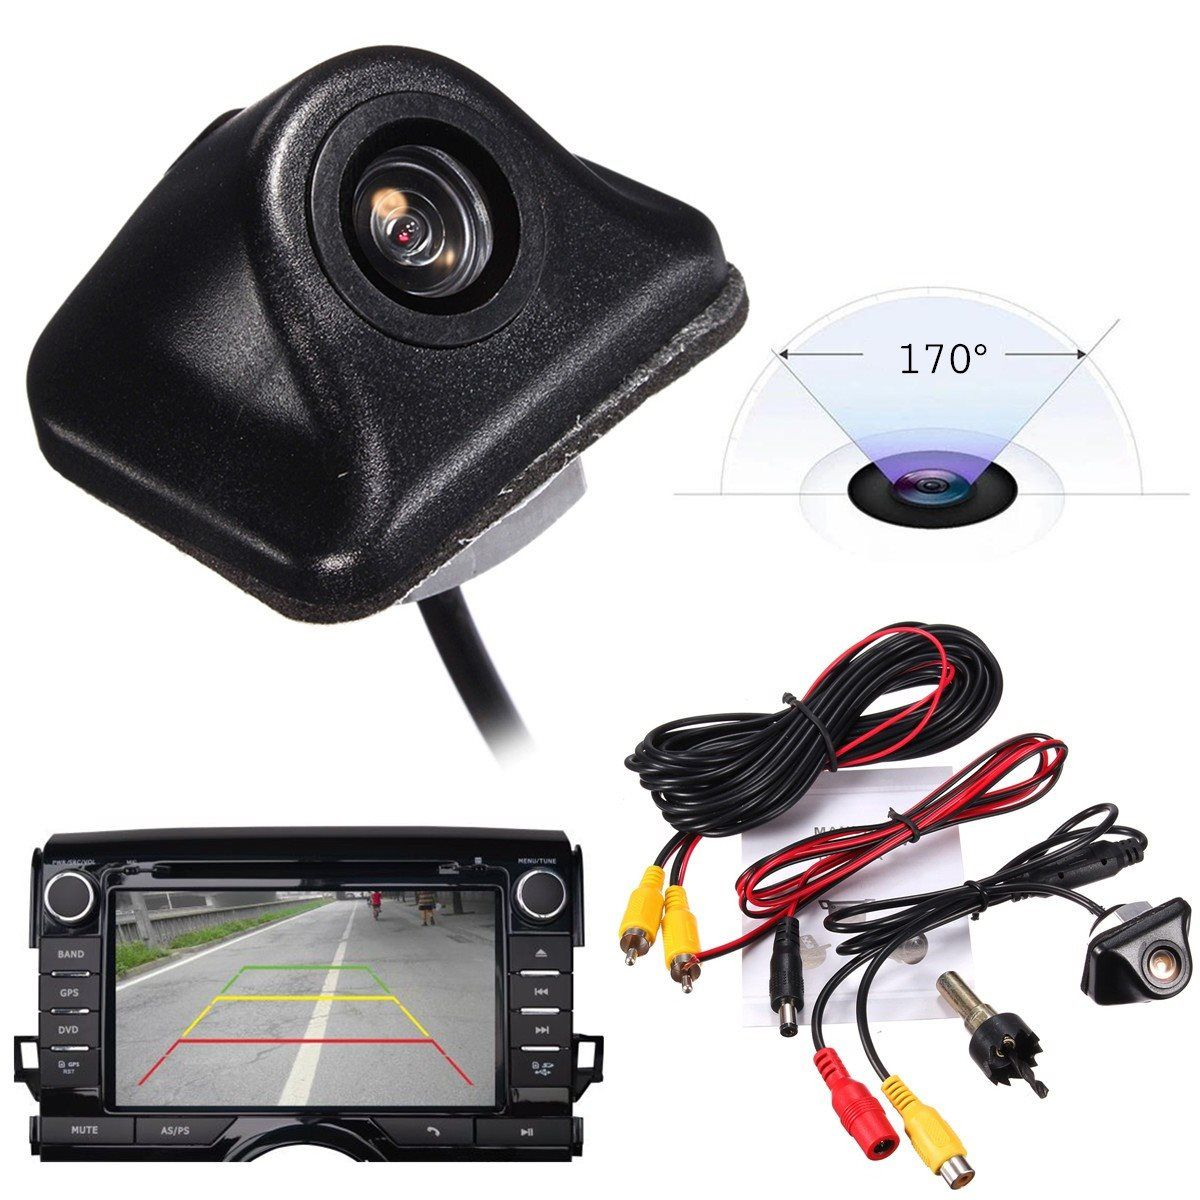 Newest 170 Night Vision Car Rear View Camera Universal Auto Parking Reverse Backup